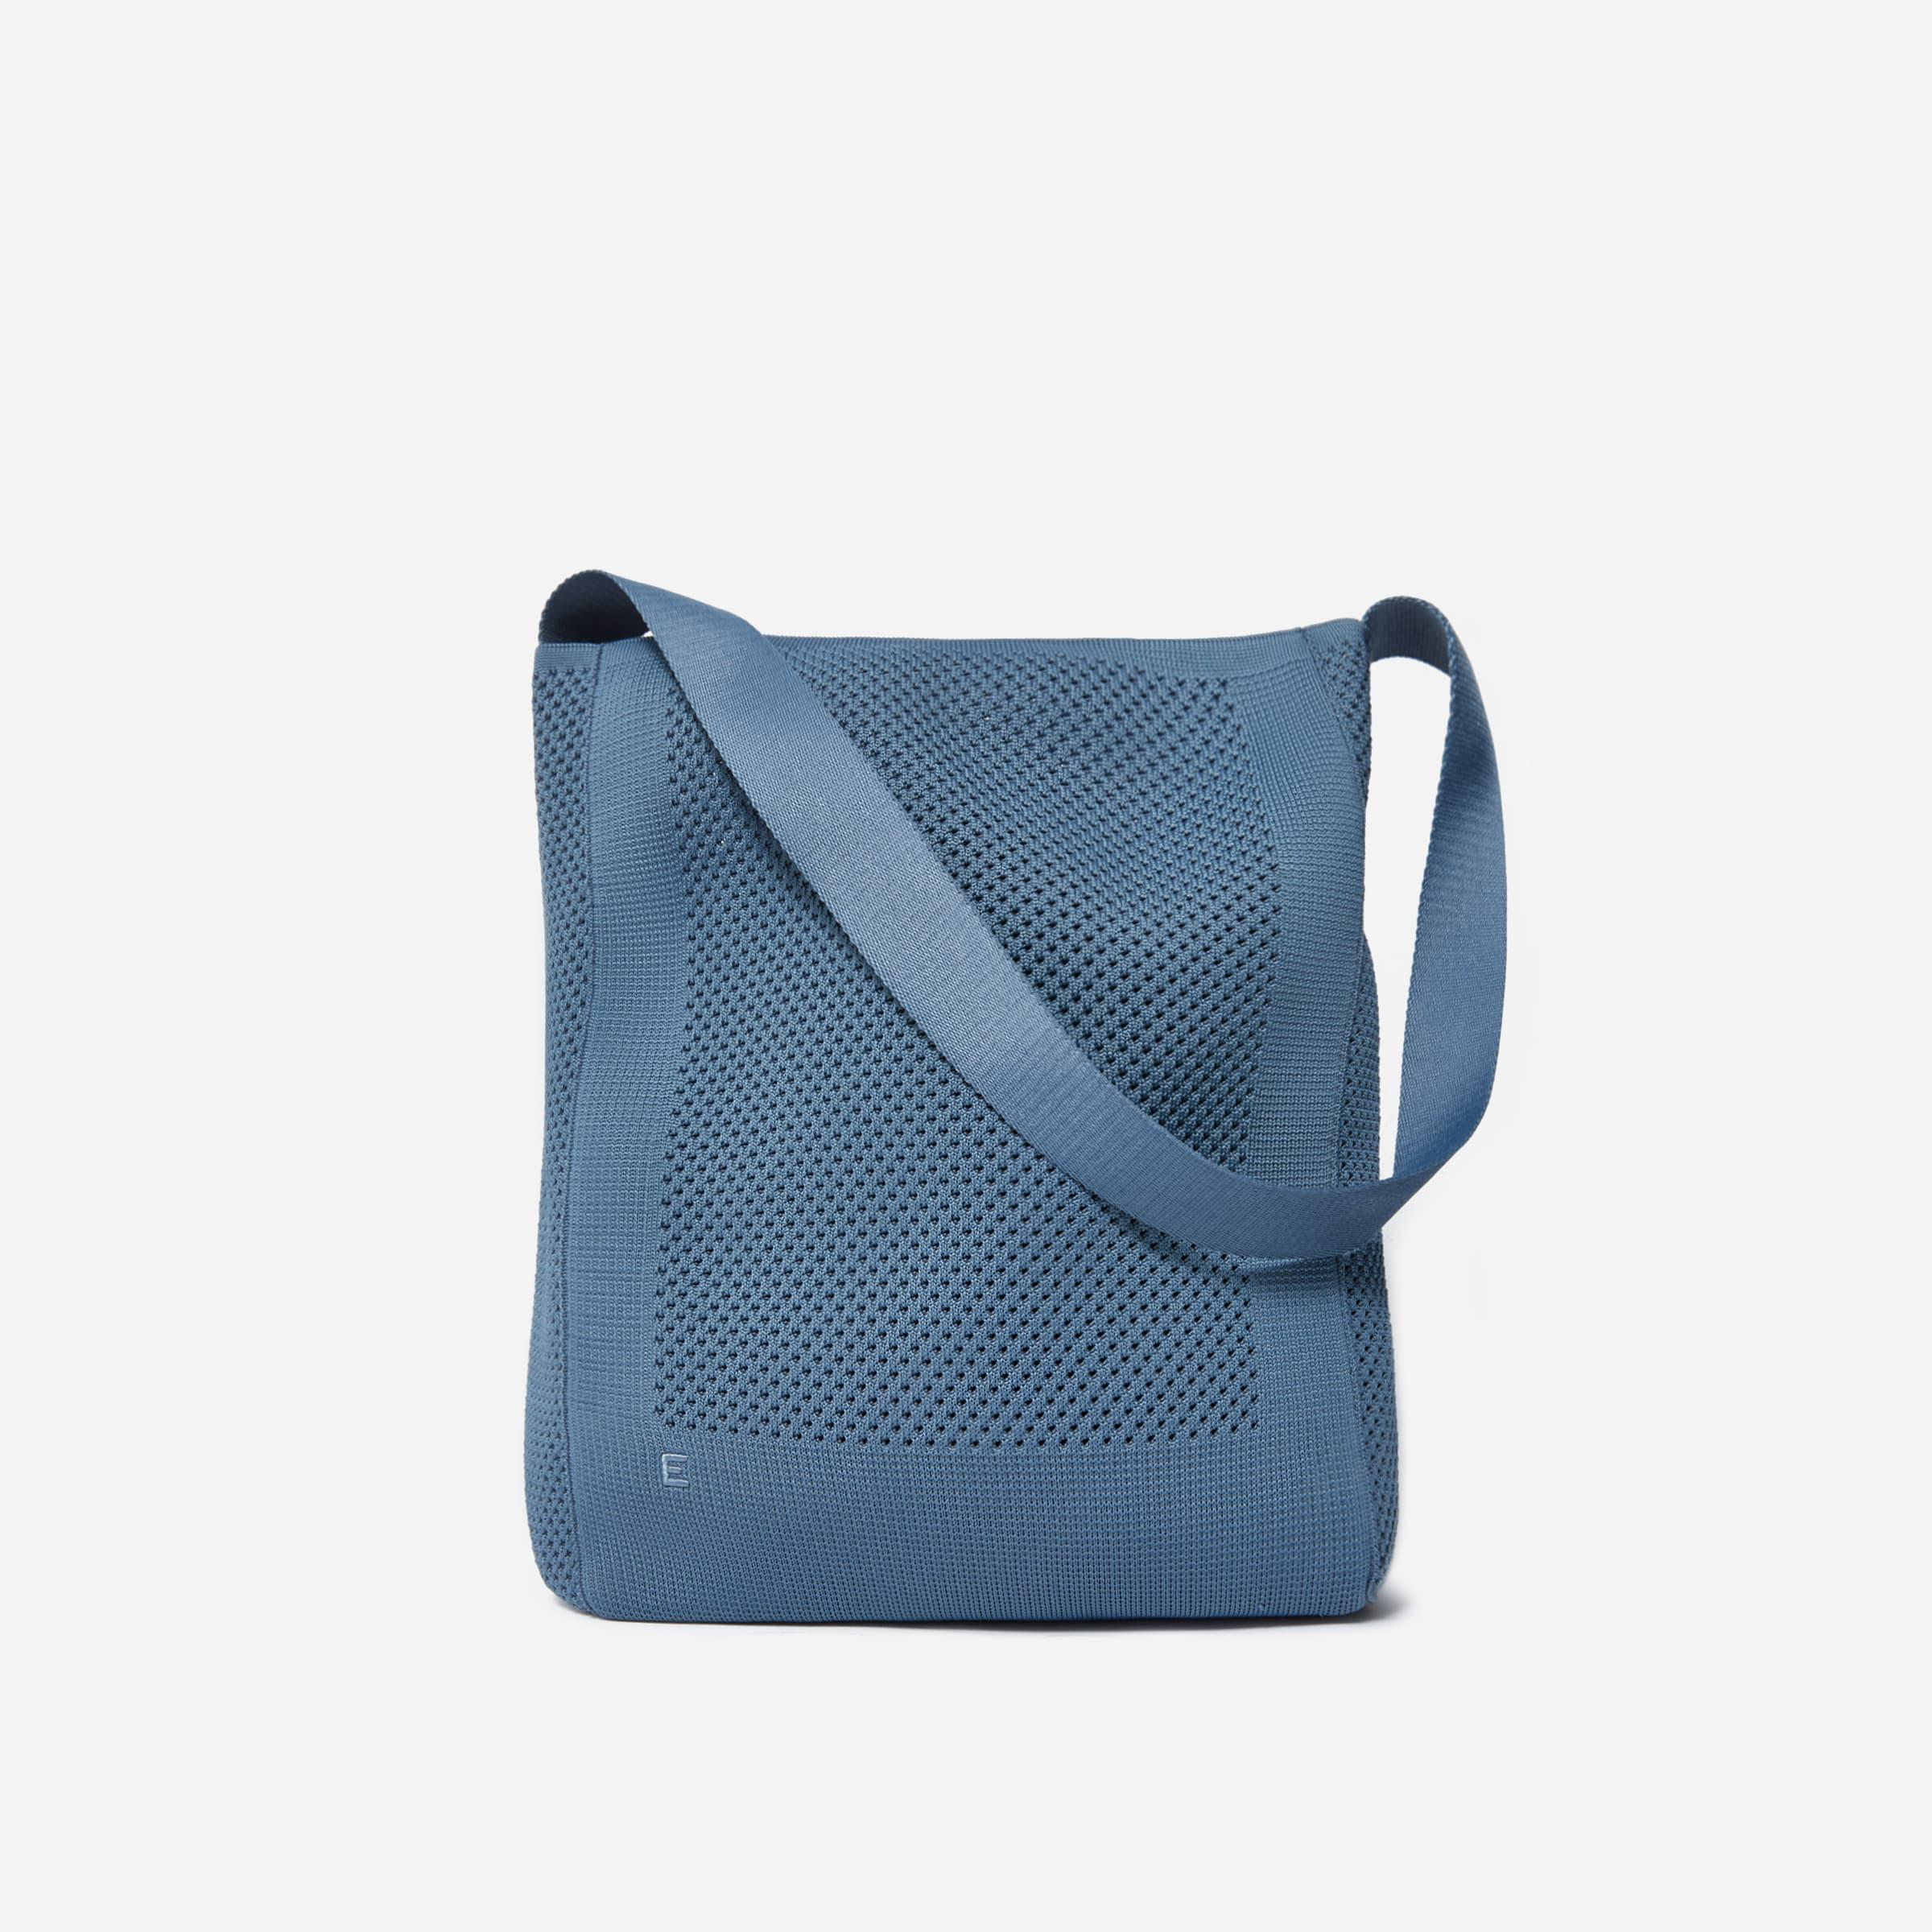 The Do-It-All Tote